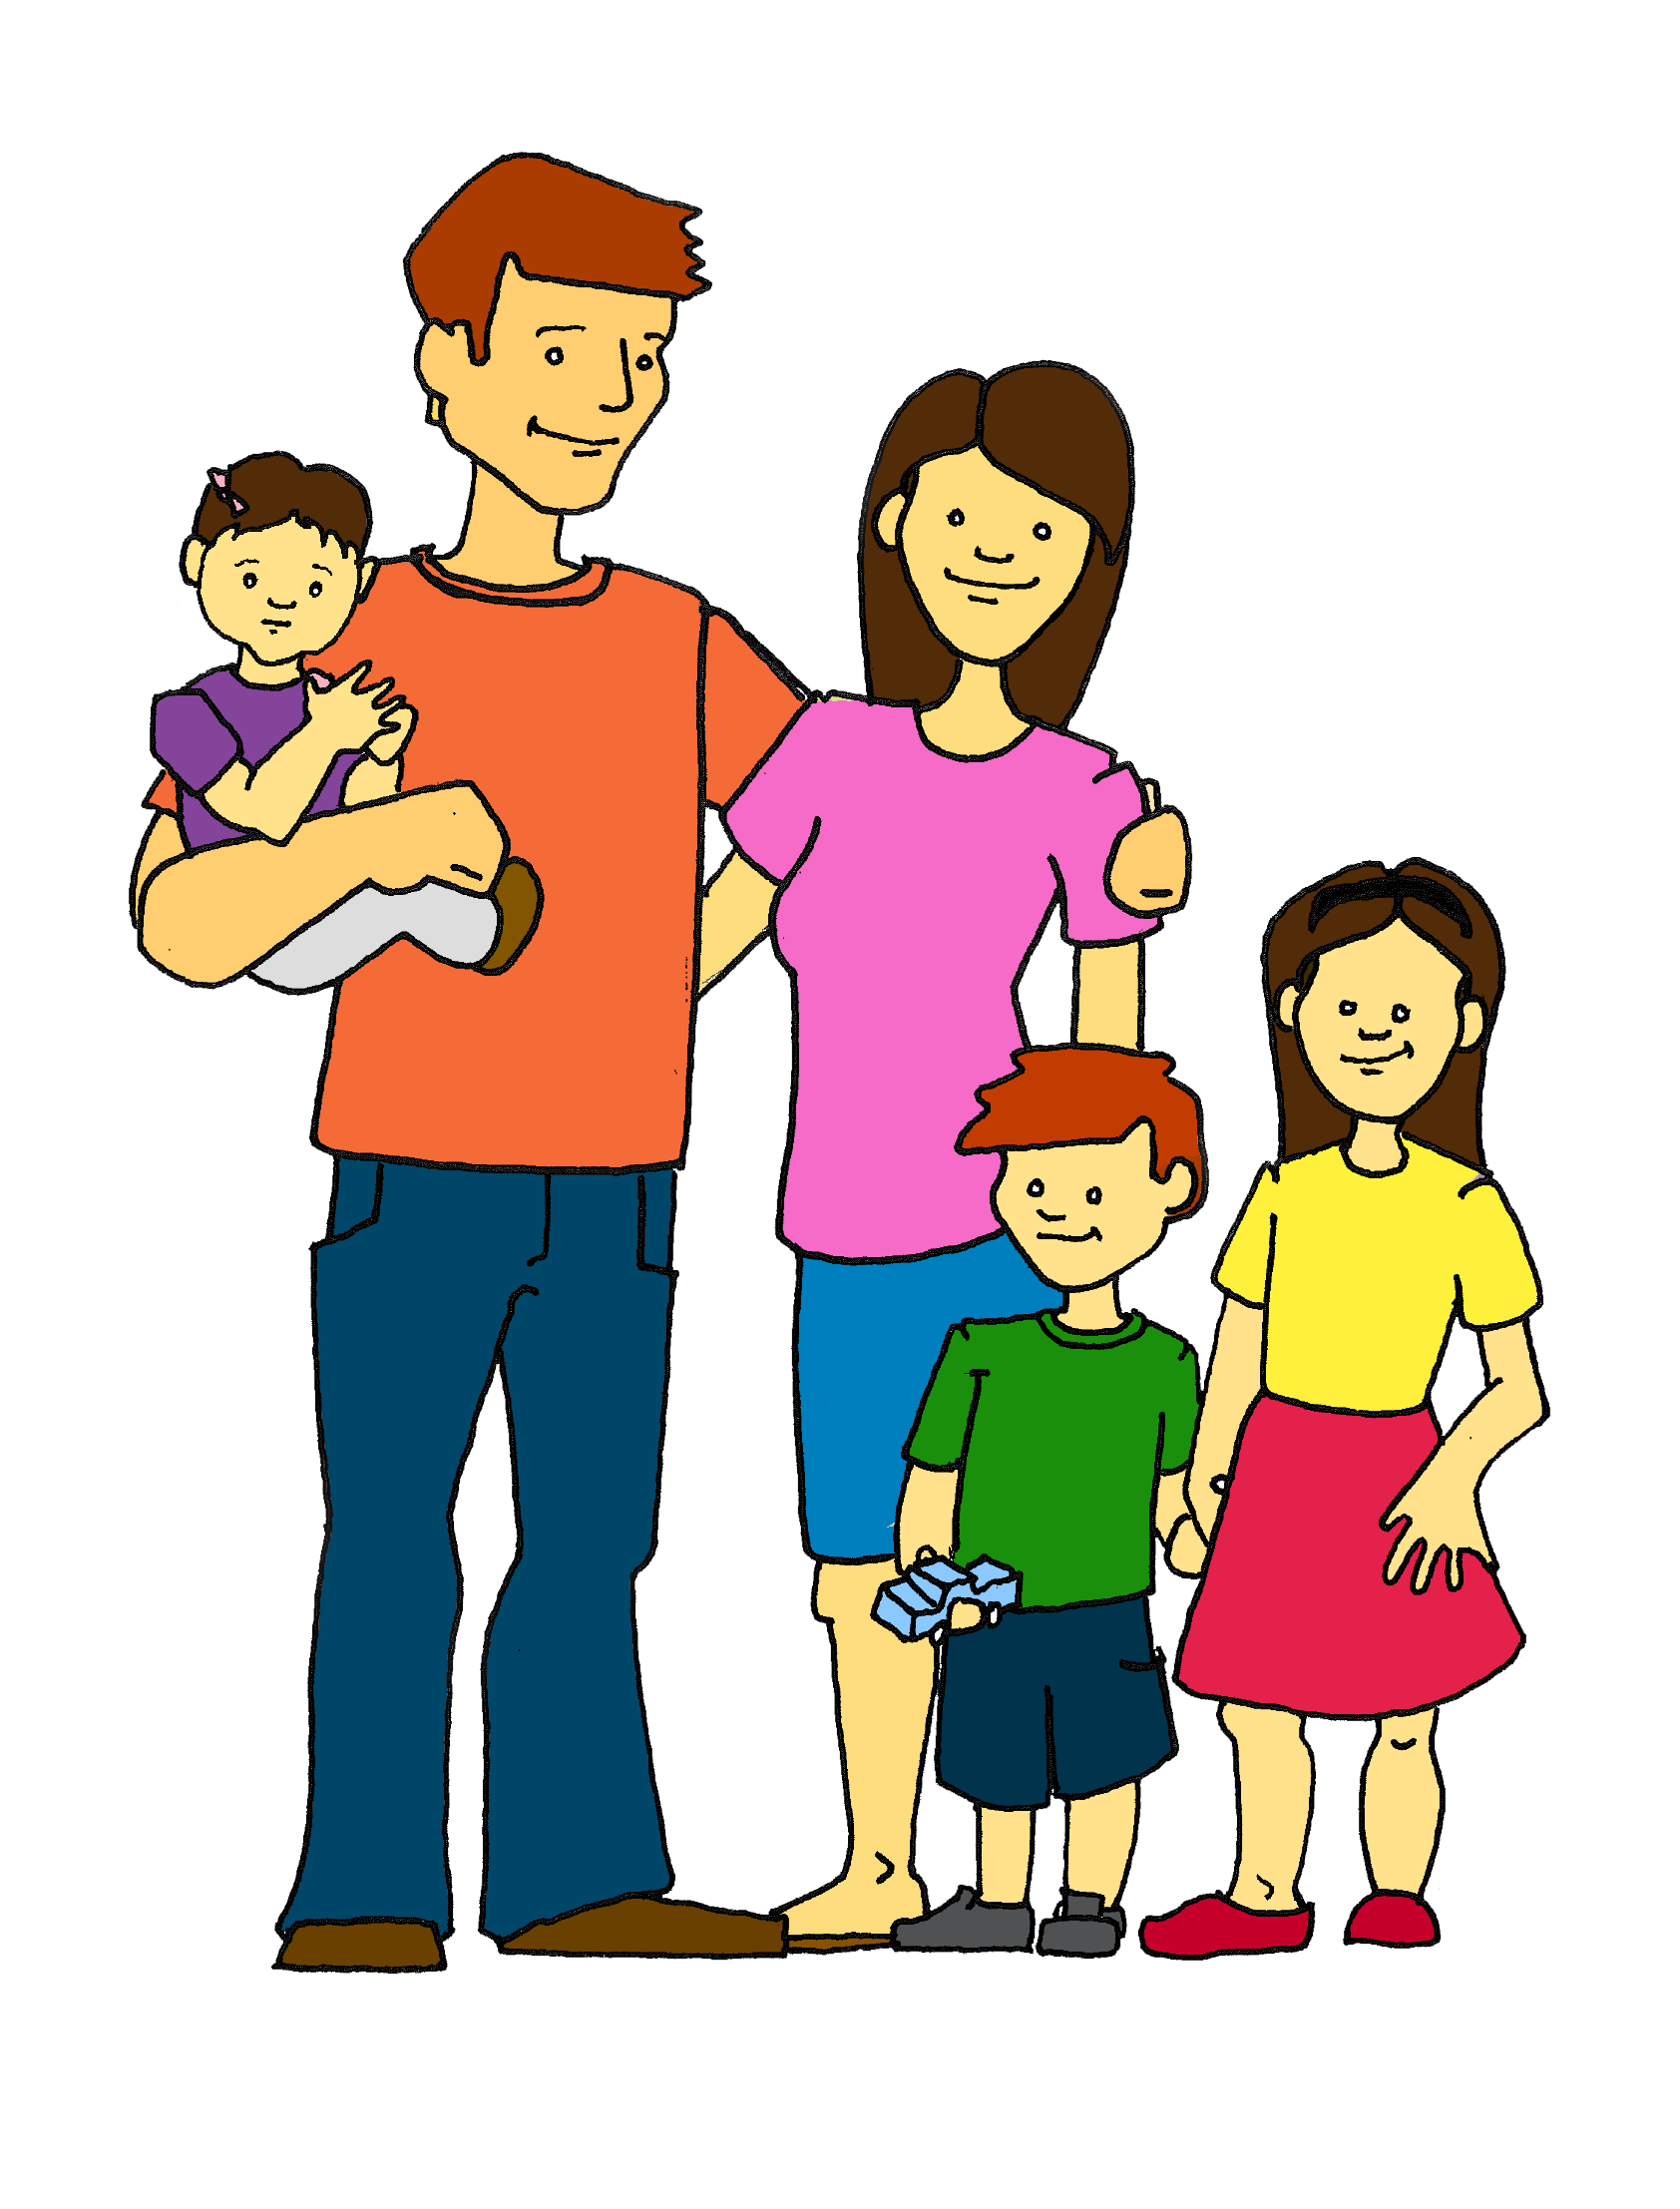 Extended clipart family indian. Free image of download